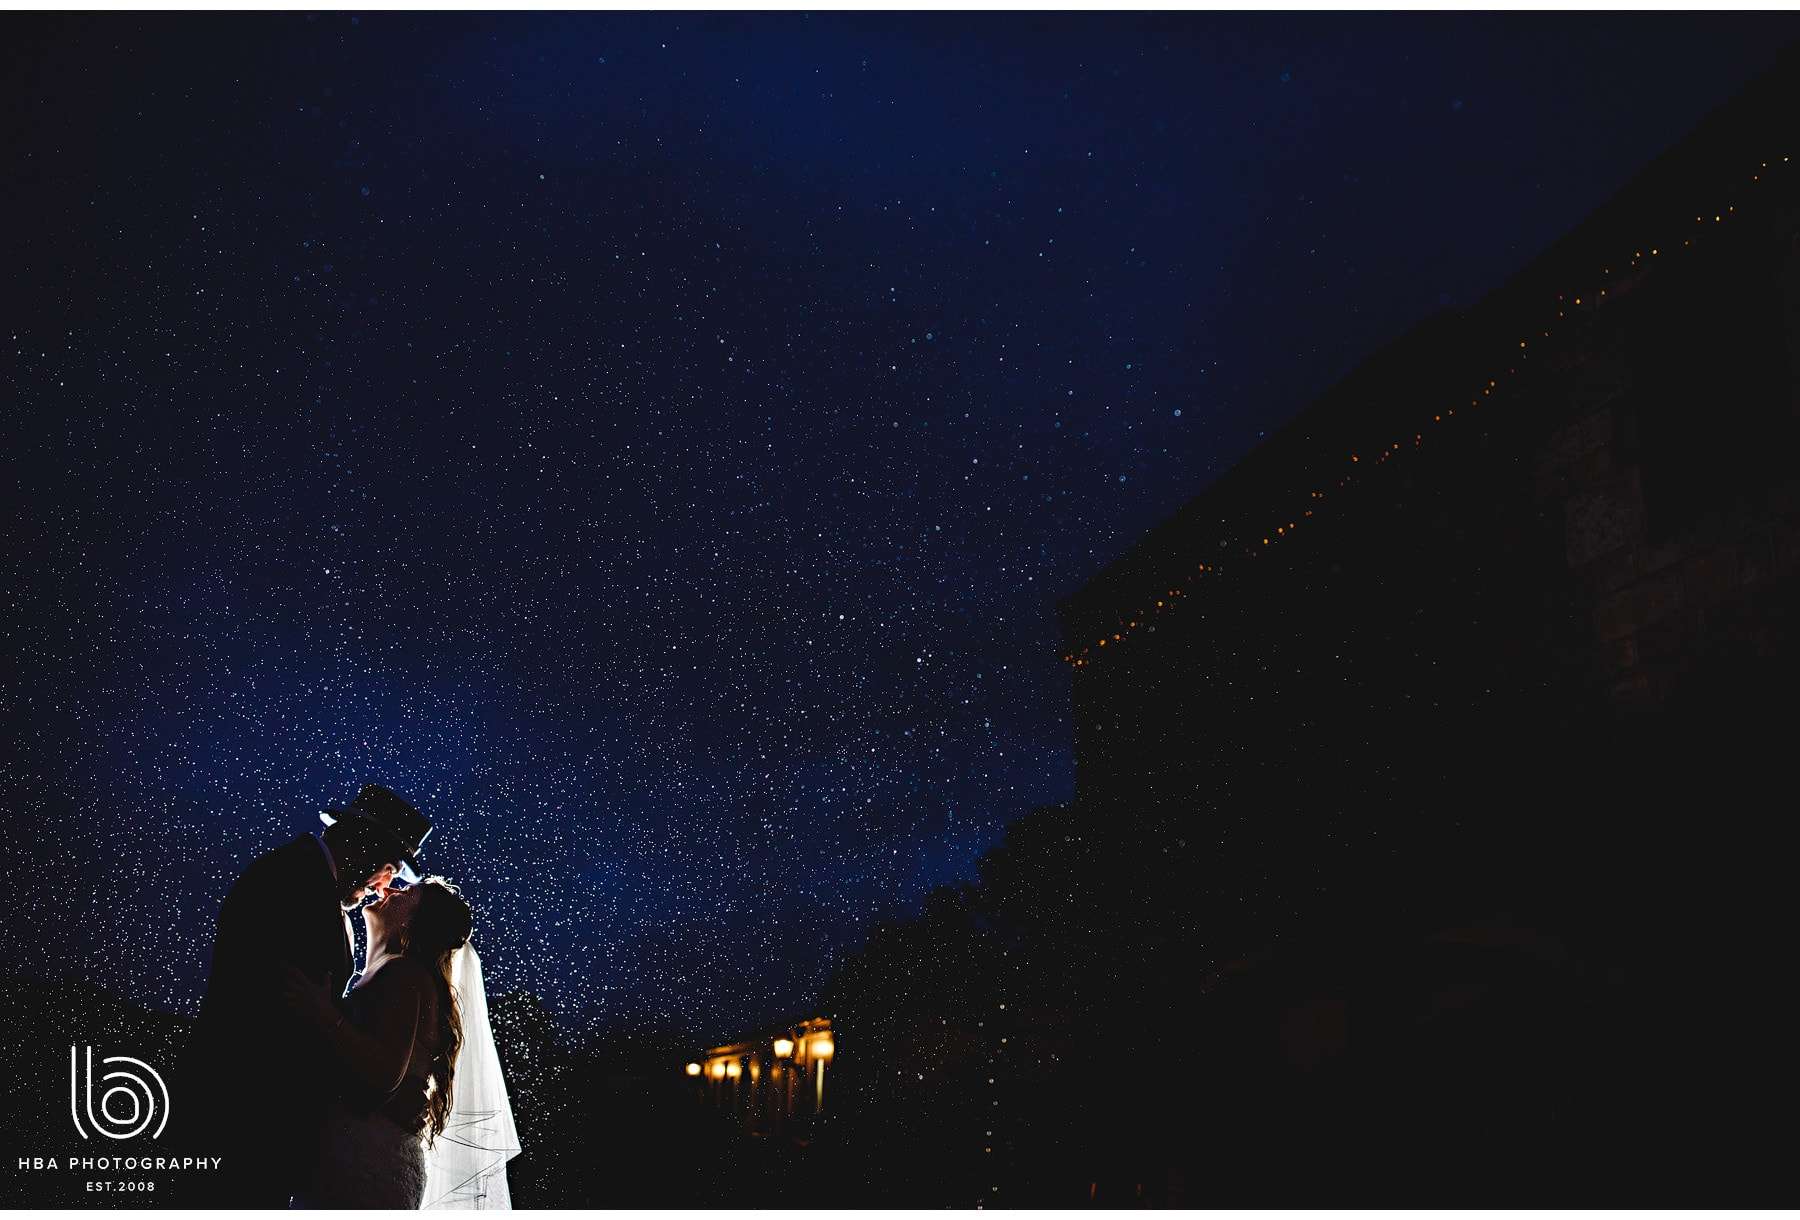 the bride & groom at night outside